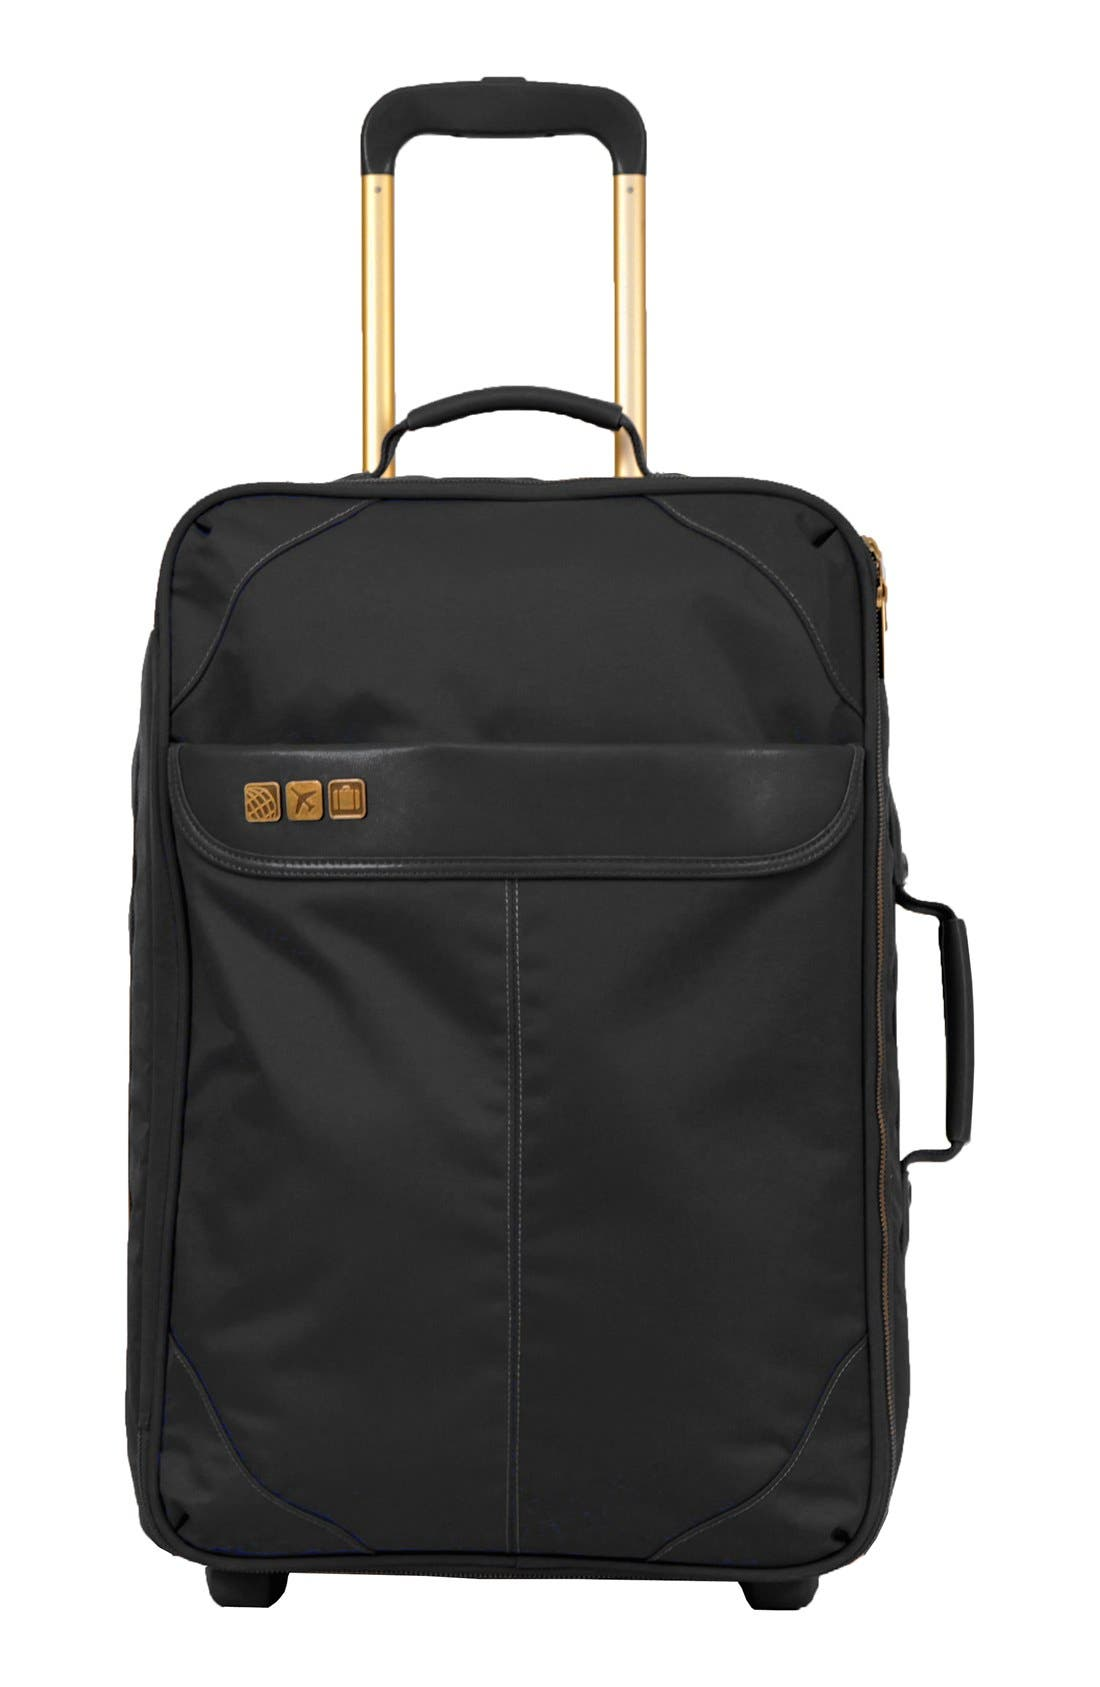 Alternate Image 1 Selected - FLIGHT 001 'Avionette' Rolling Carry-On Suitcase (22 Inch)